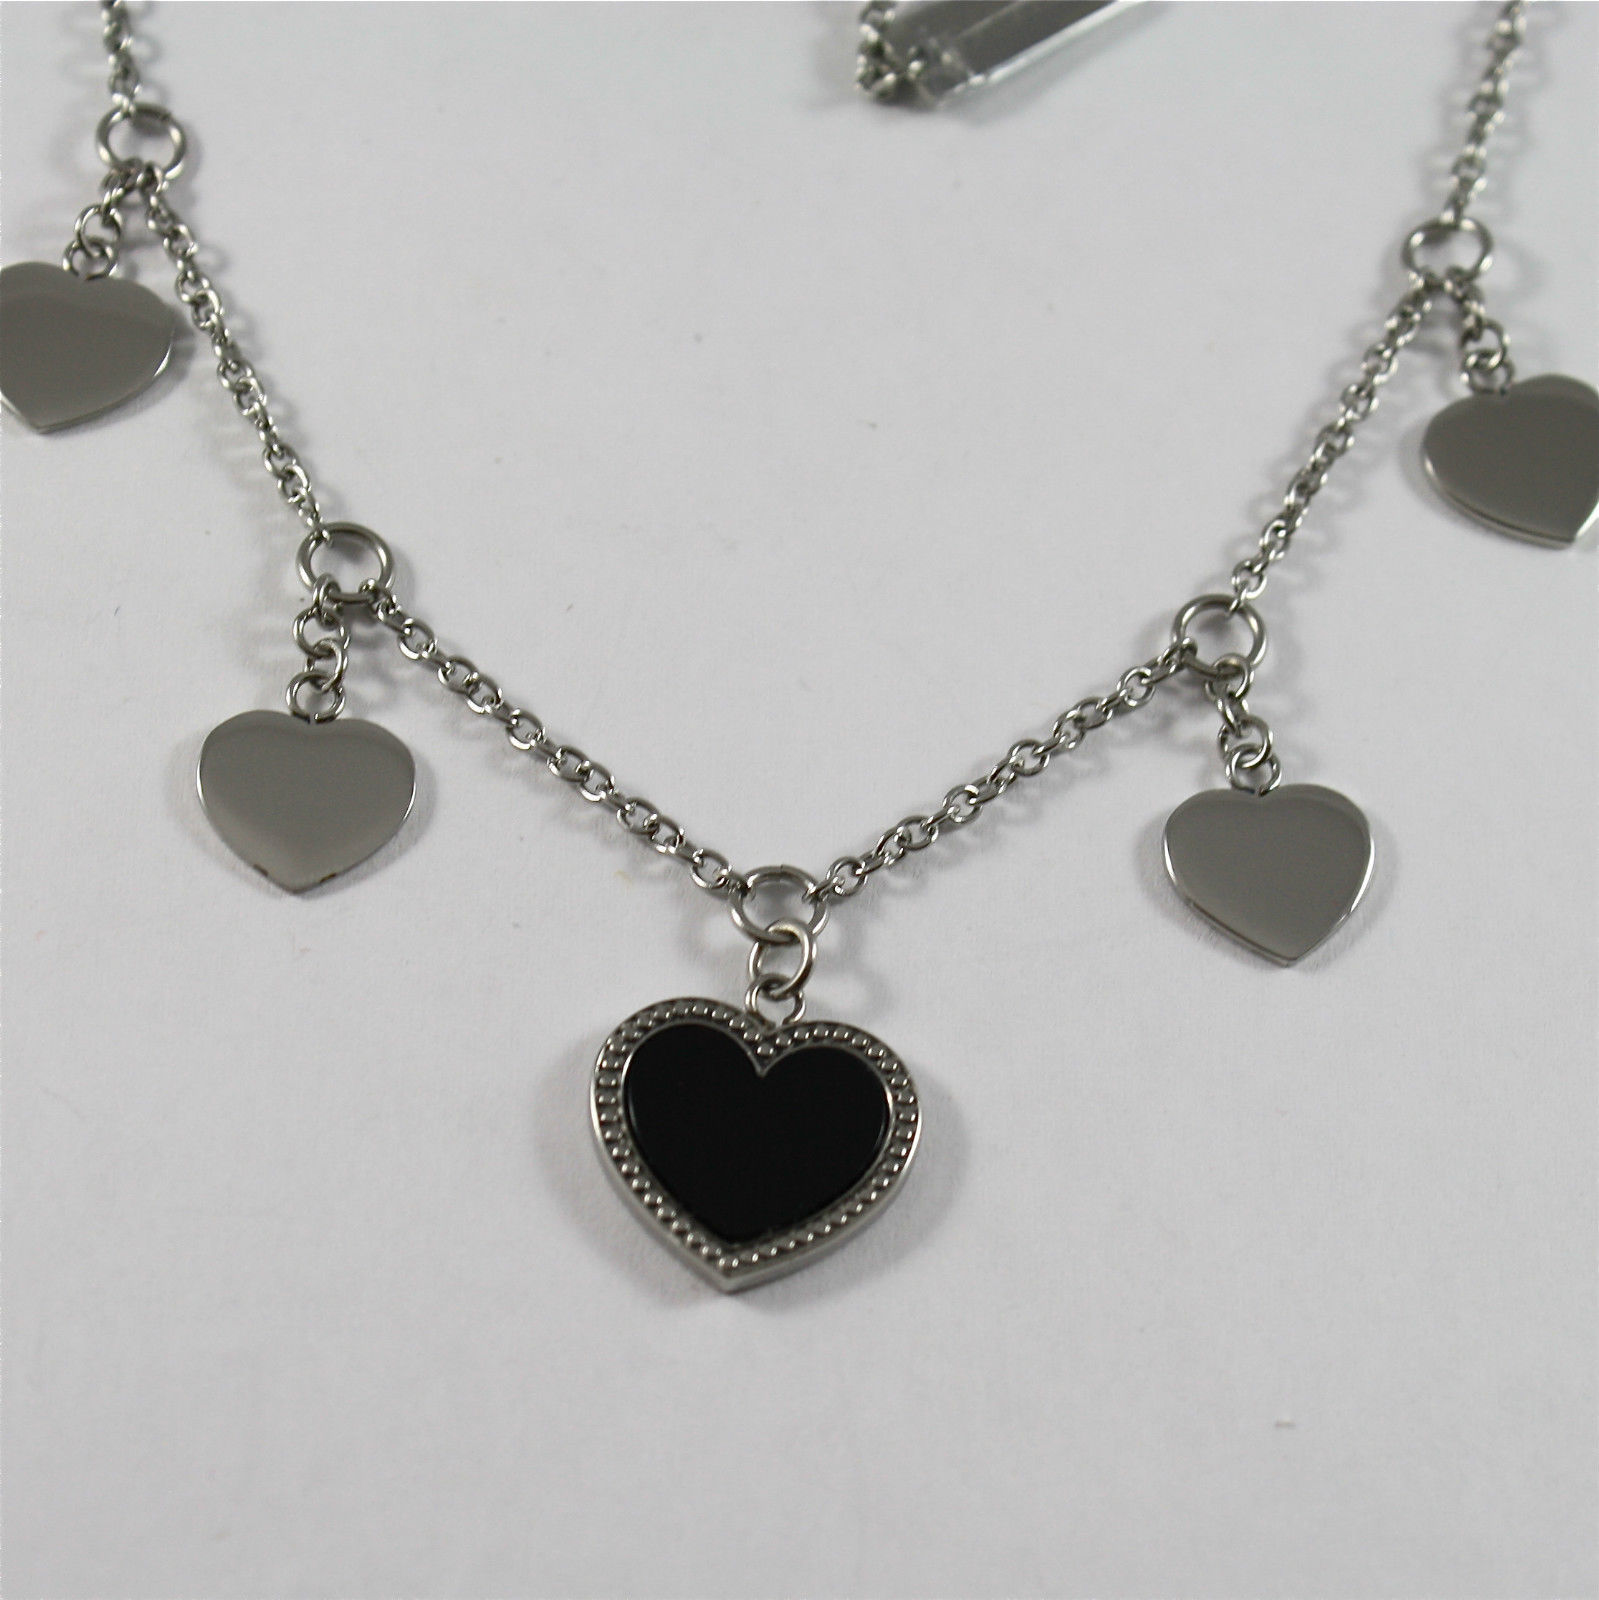 S'AGAPO' NECKLACE, 316L STEEL, BLACK GLAZED HEARTS, CENTRAL, FOUR HEARTS CHARMS.